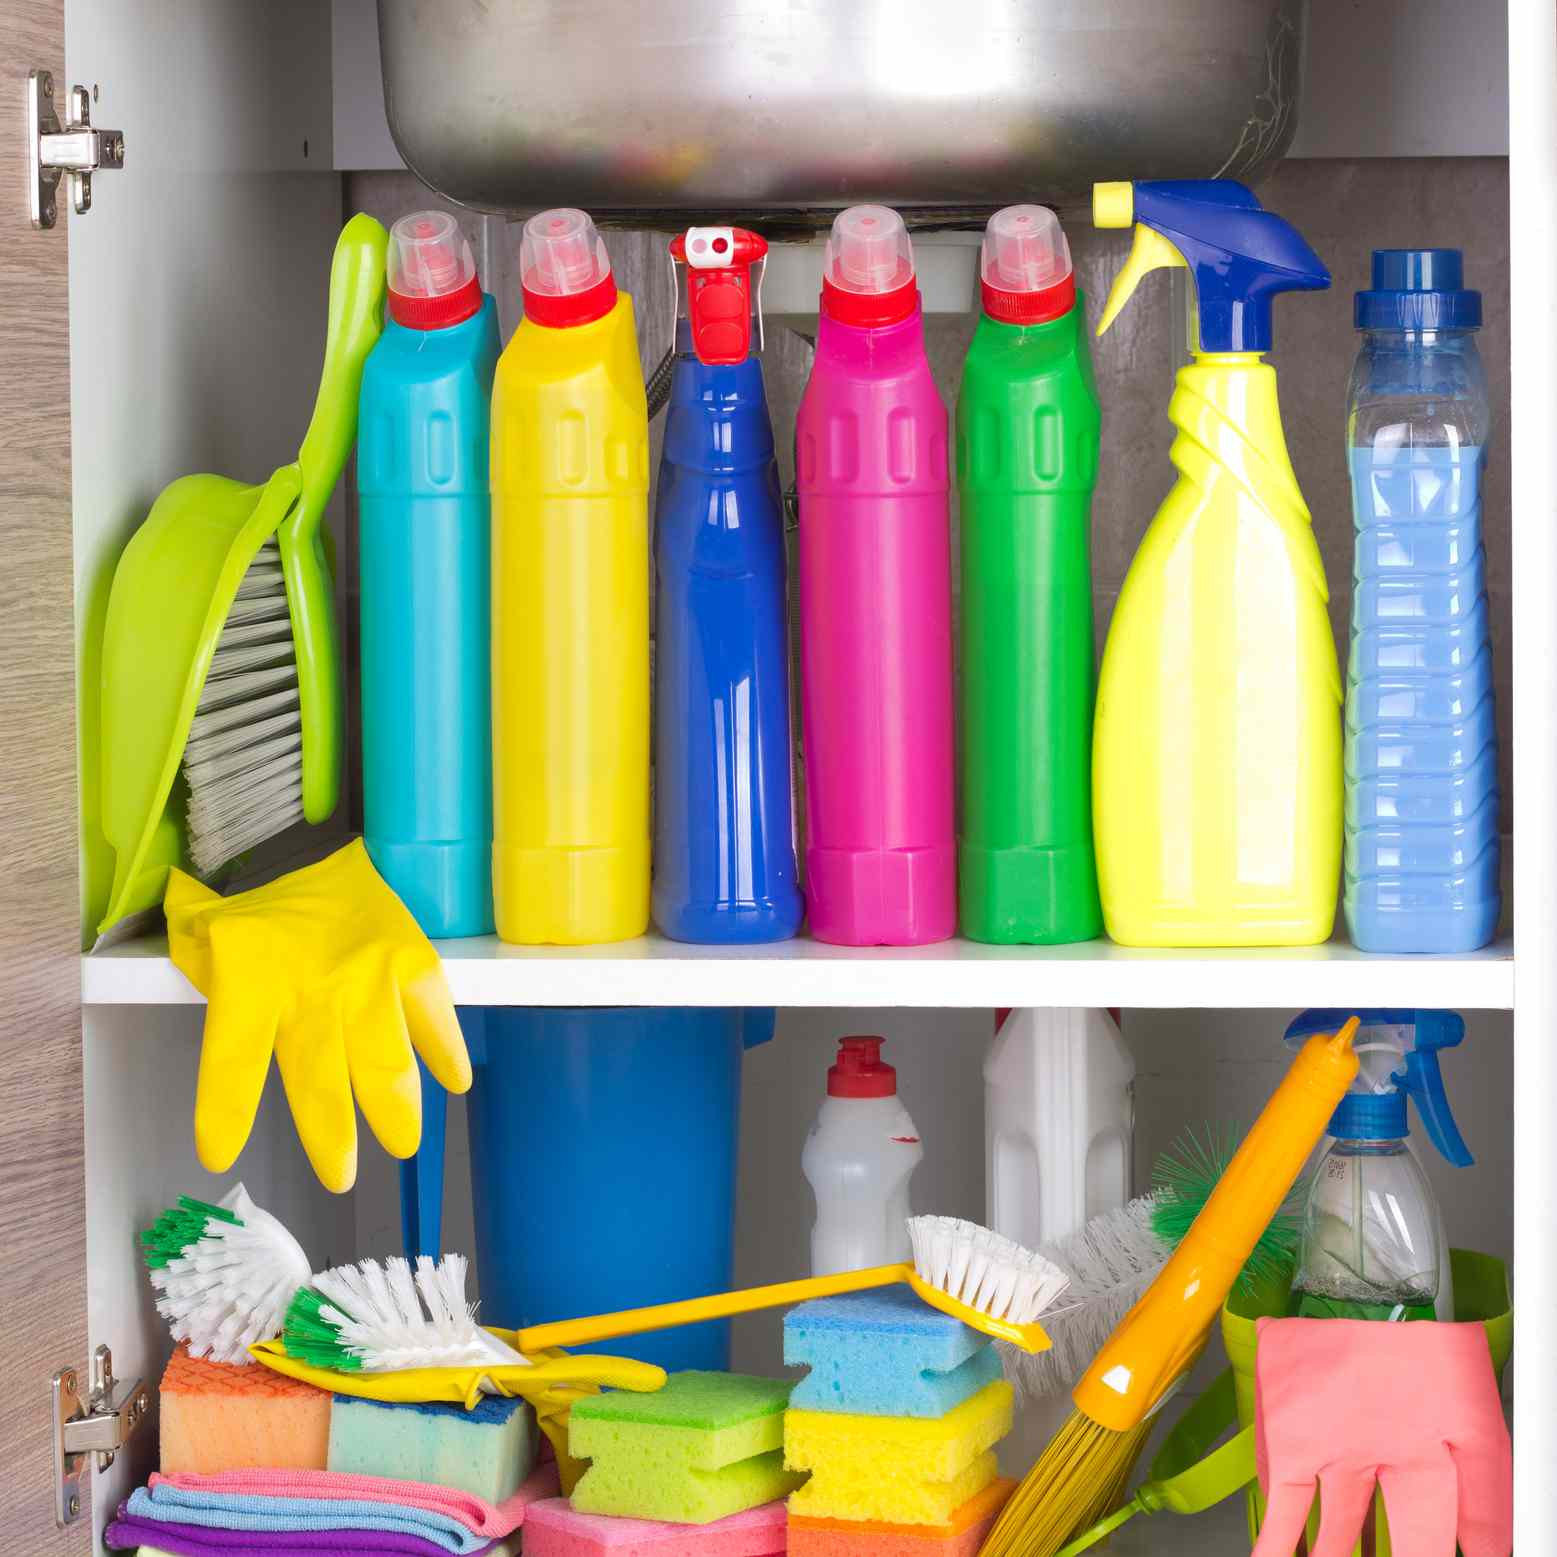 Cleaning products under sink